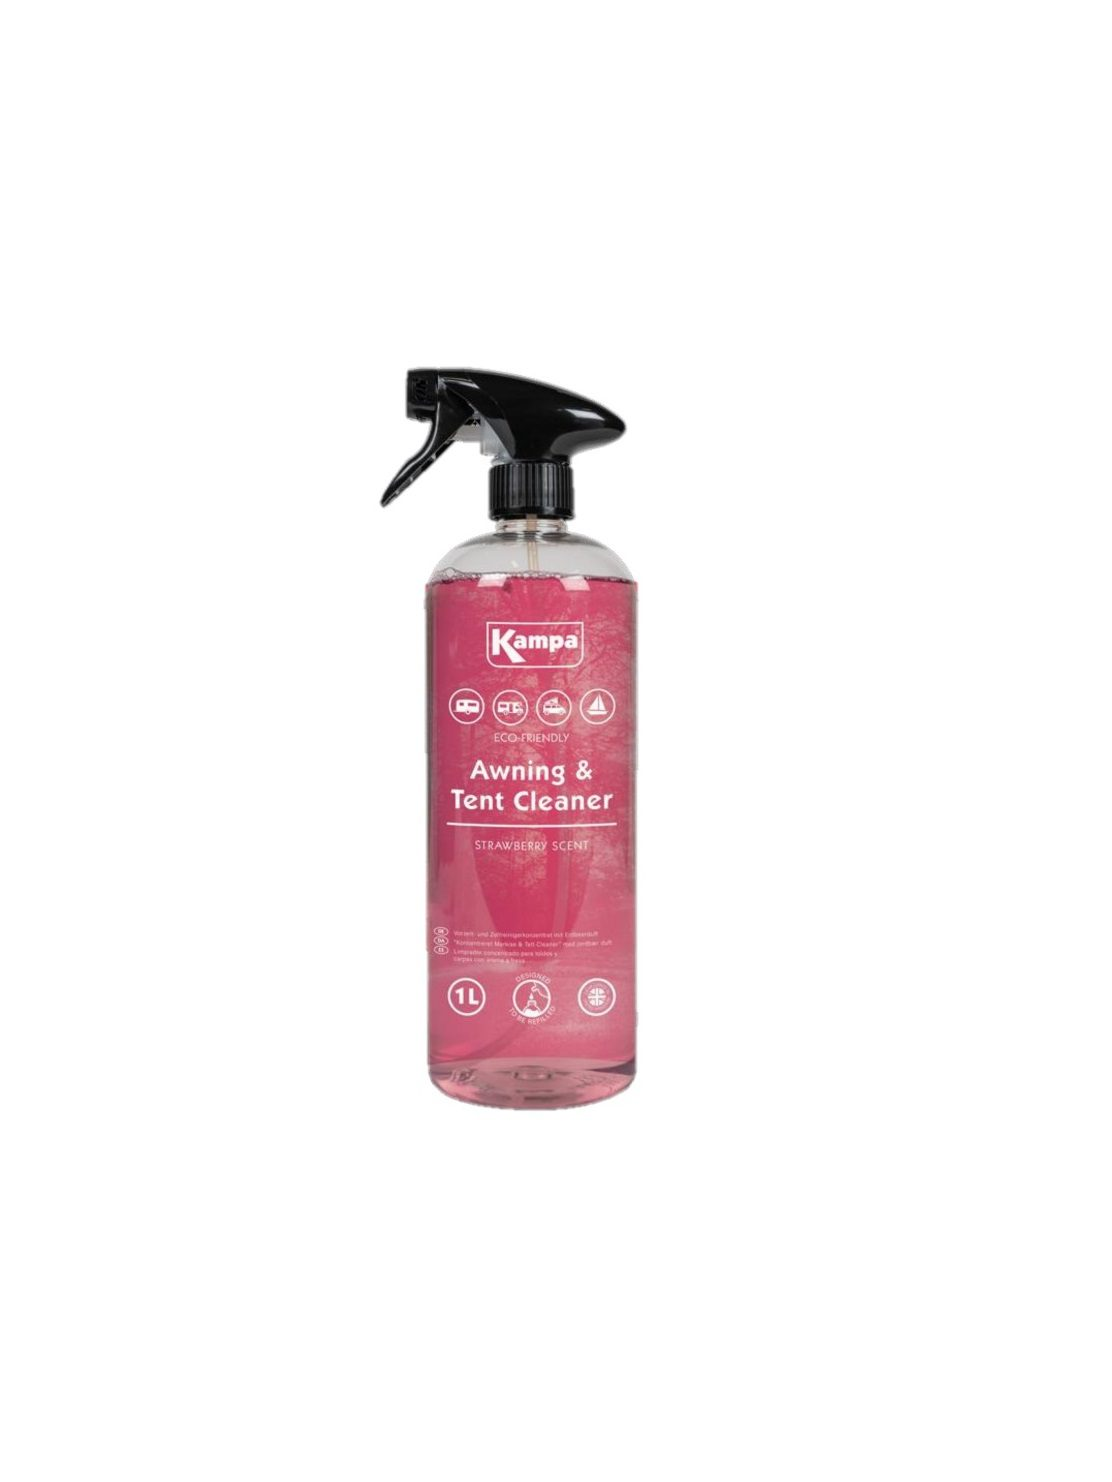 Kampa Awning and tent cleaner